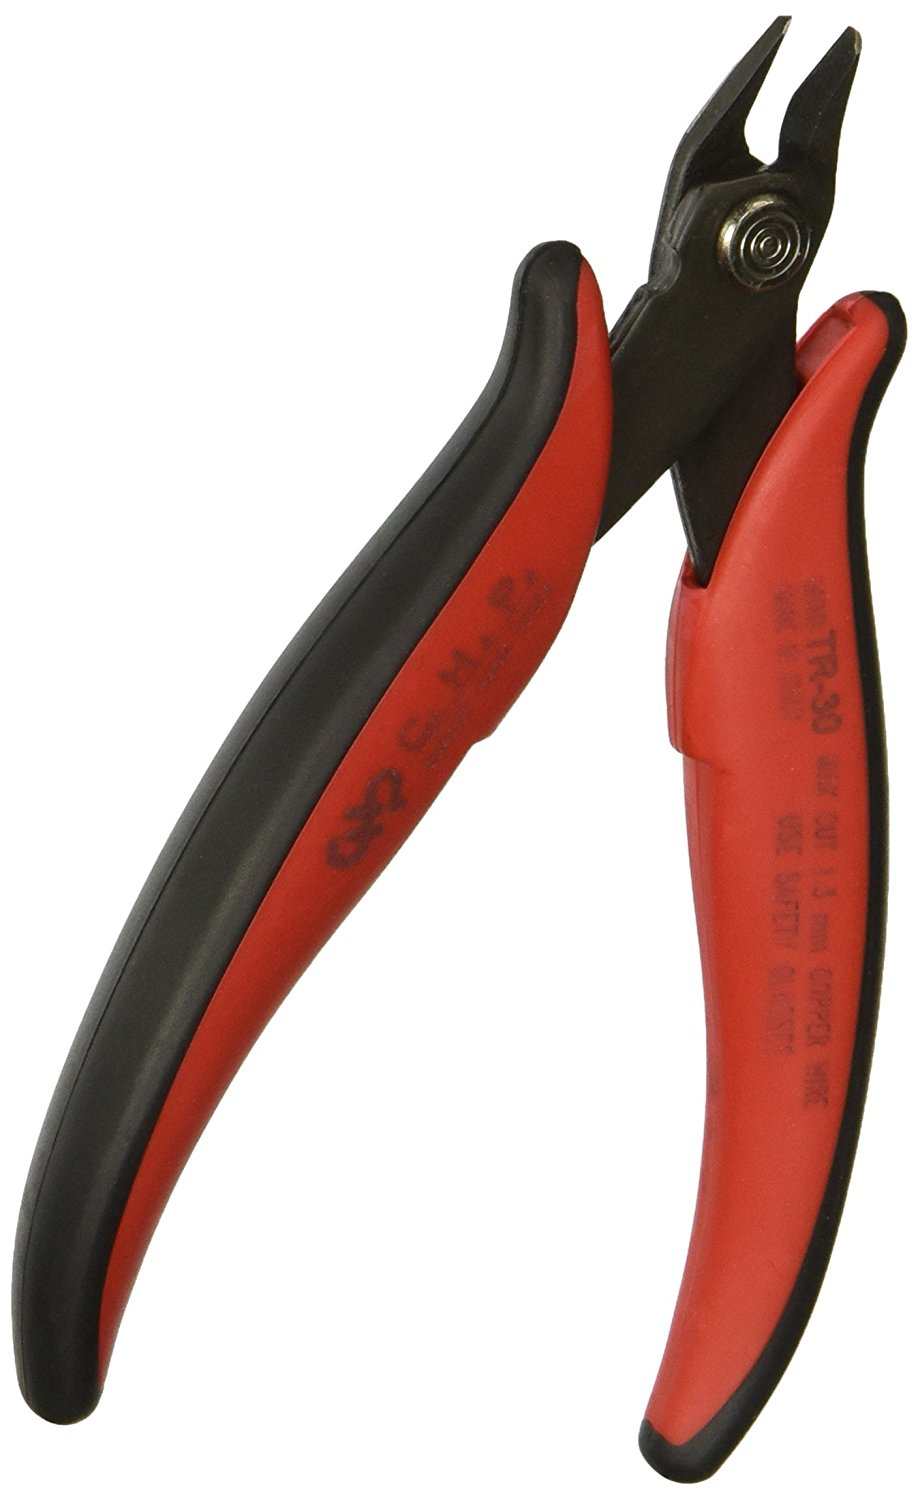 Hakko CHP TR-30 Medium Soft Wire Cutter, Flush-cut, 3.0mm Hardened Carbon Steel Construction, 21-Degree Angled Jaw, 8mm Jaw Length, 16 Gauge Maximum Cutting Capacity